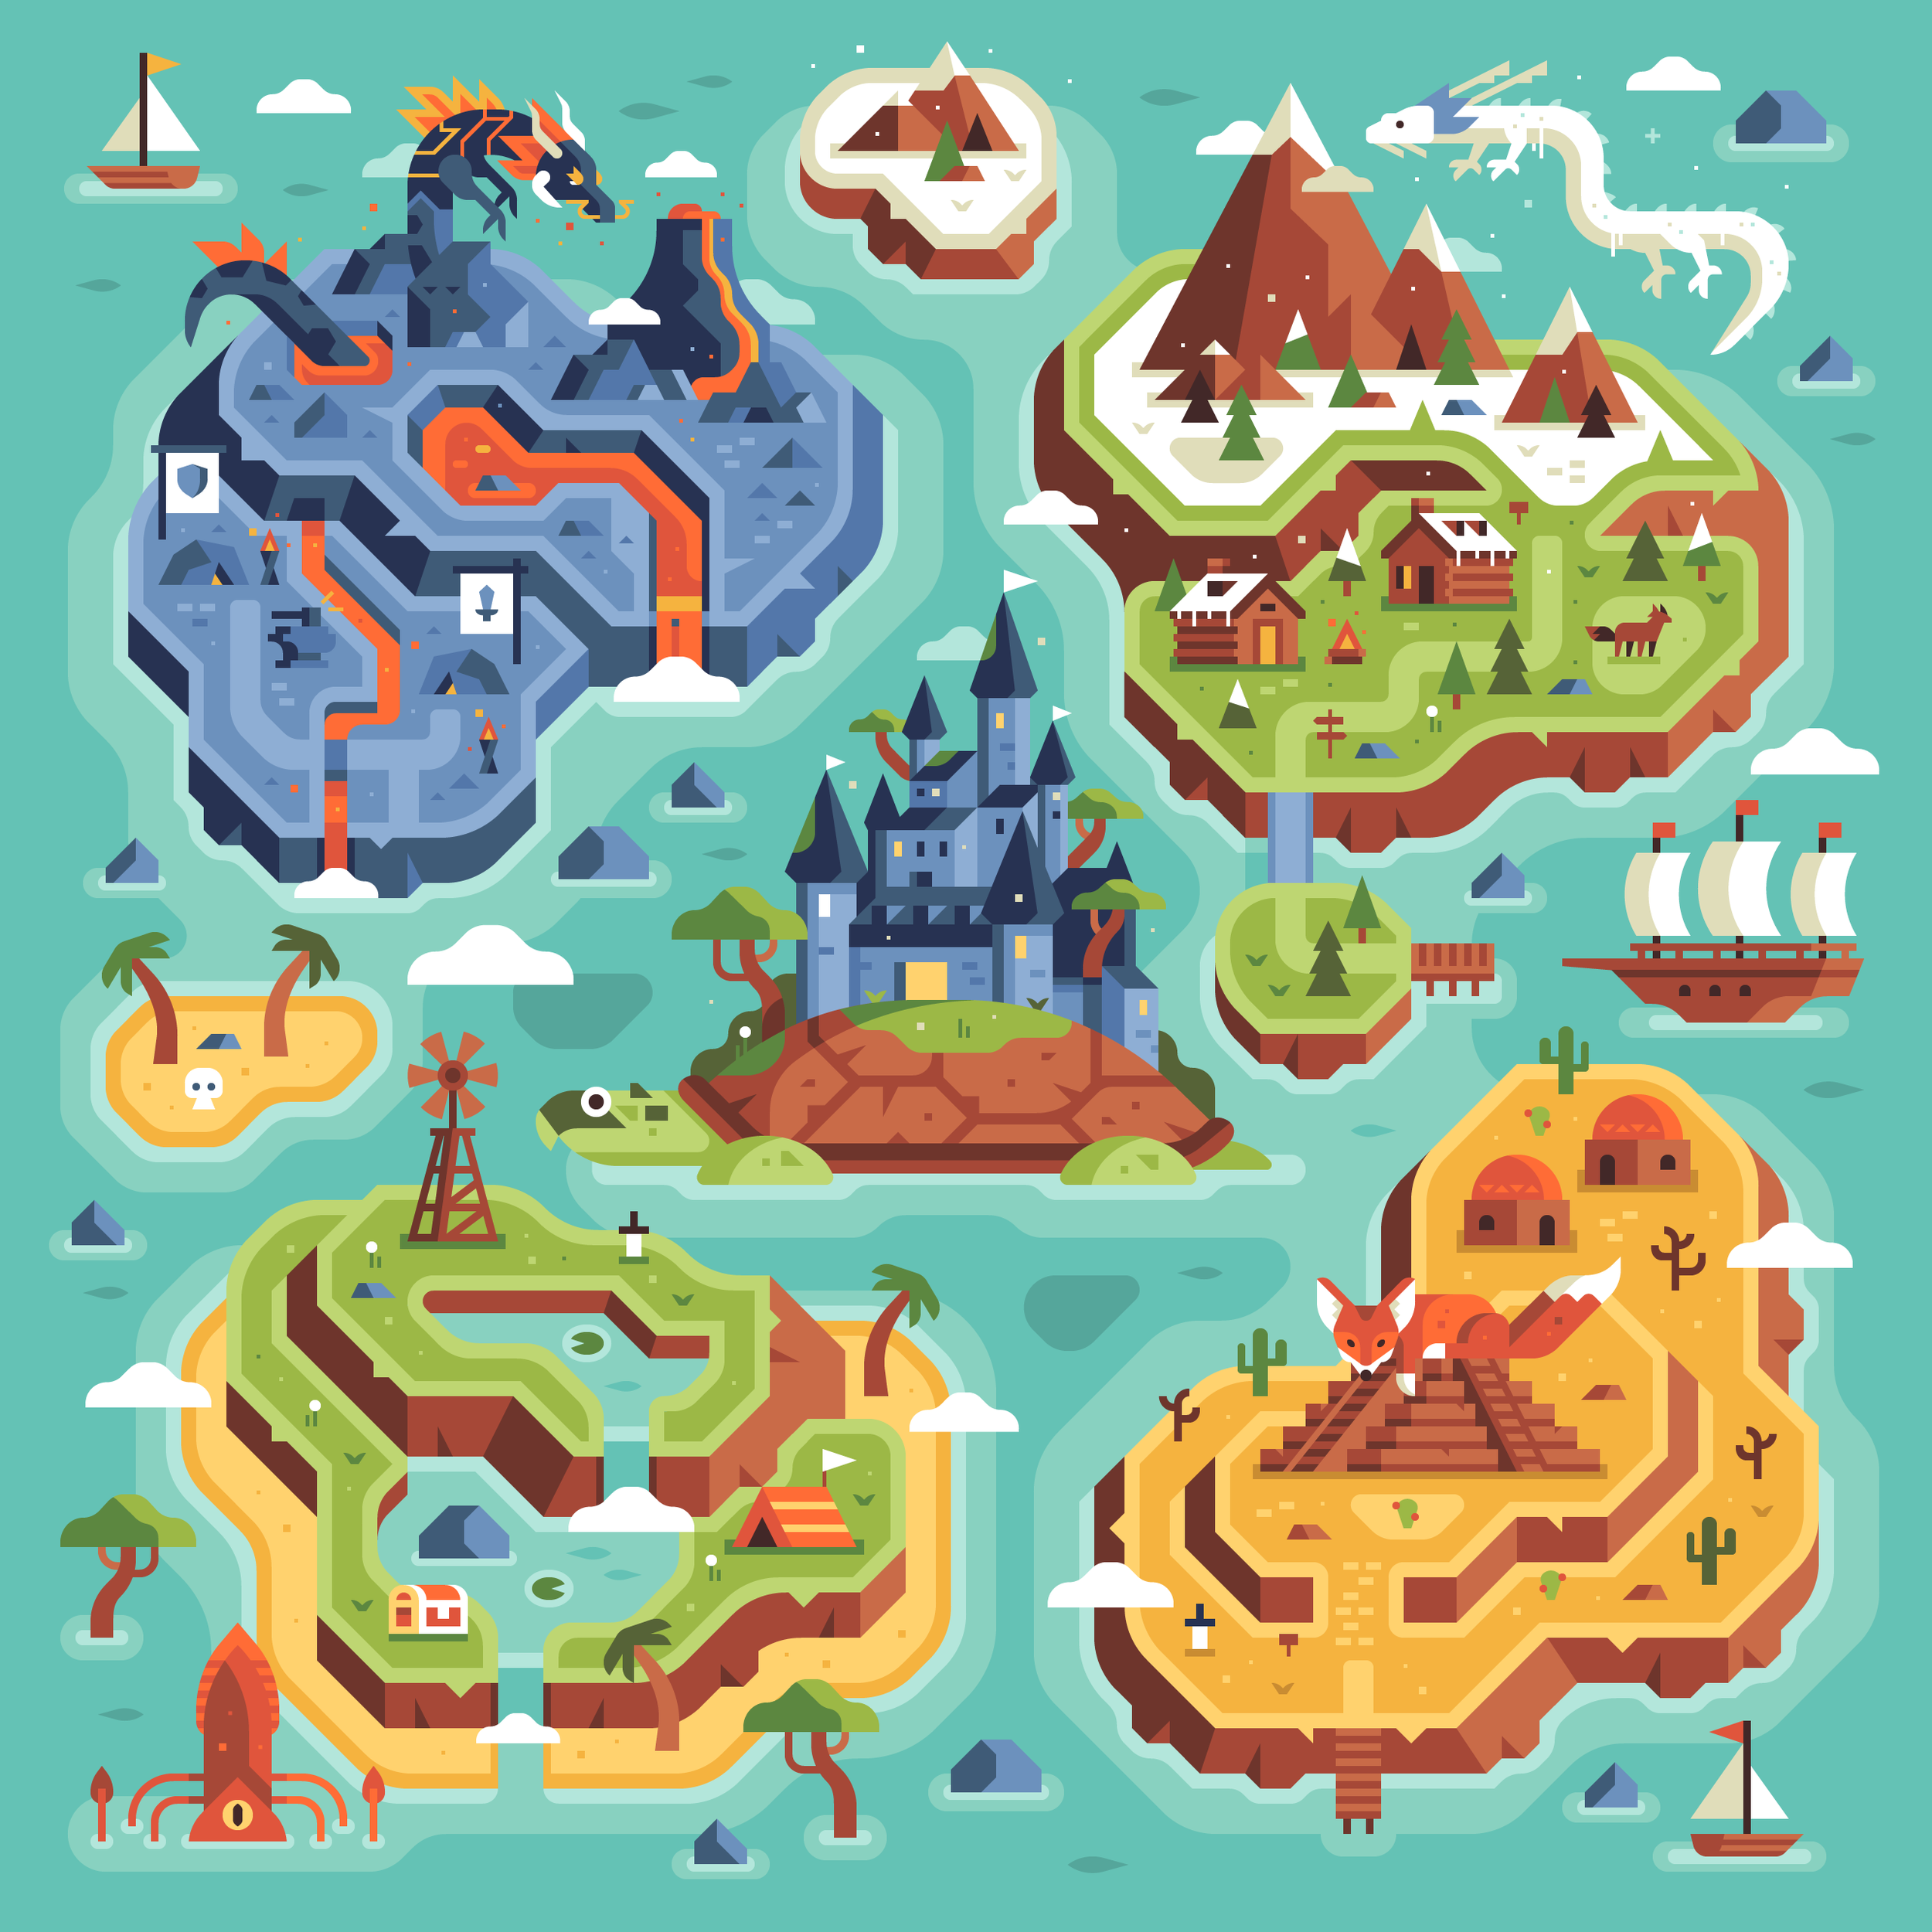 Two Dots Level Uplands treasure hunt map by Canopy Design and Illustration